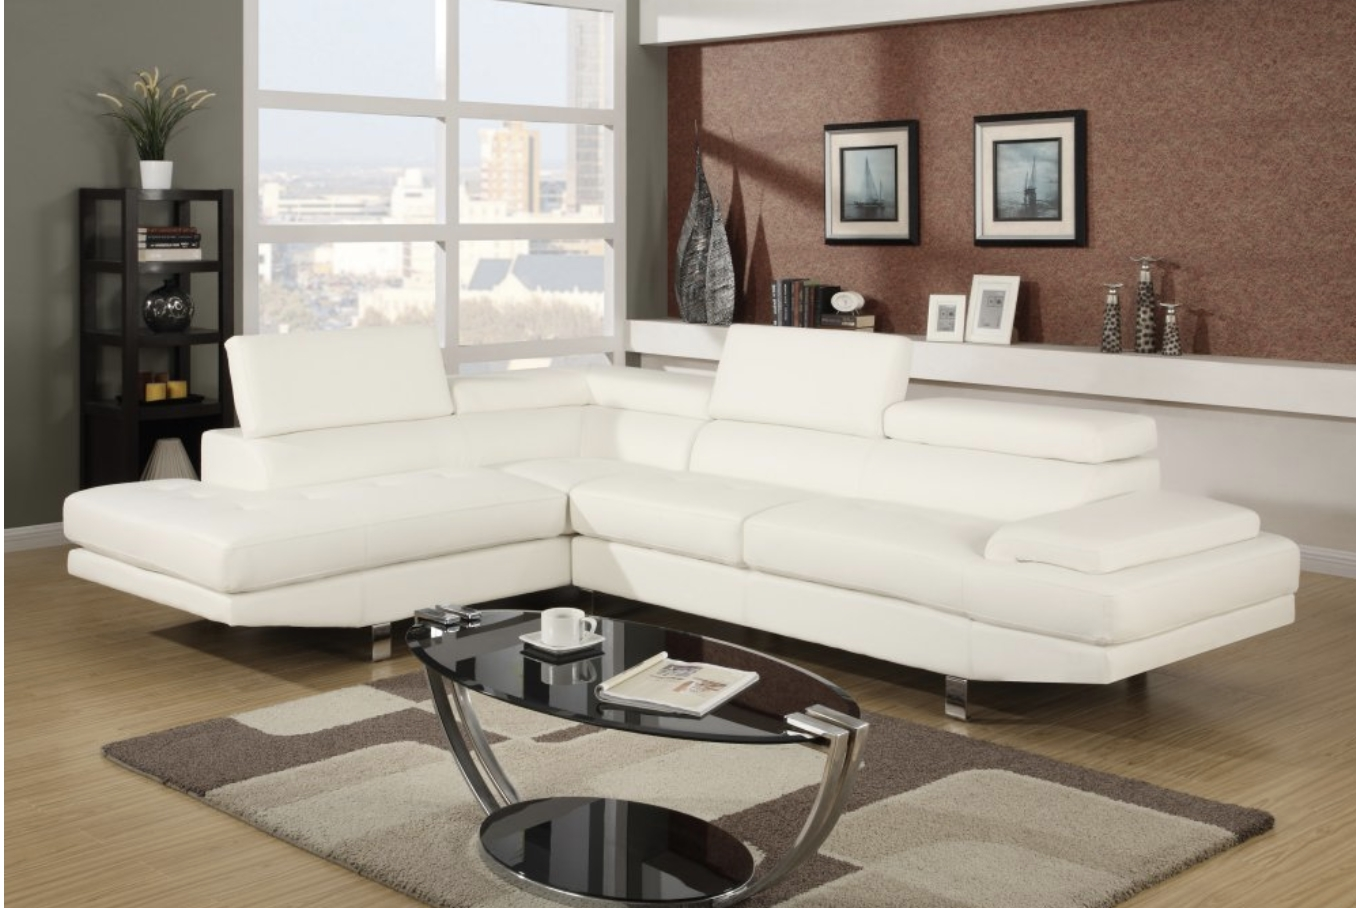 100X80 Sectional Sofas For Most Recent 75 Modern Sectional Sofas For Small Spaces (2018) (Gallery 10 of 20)